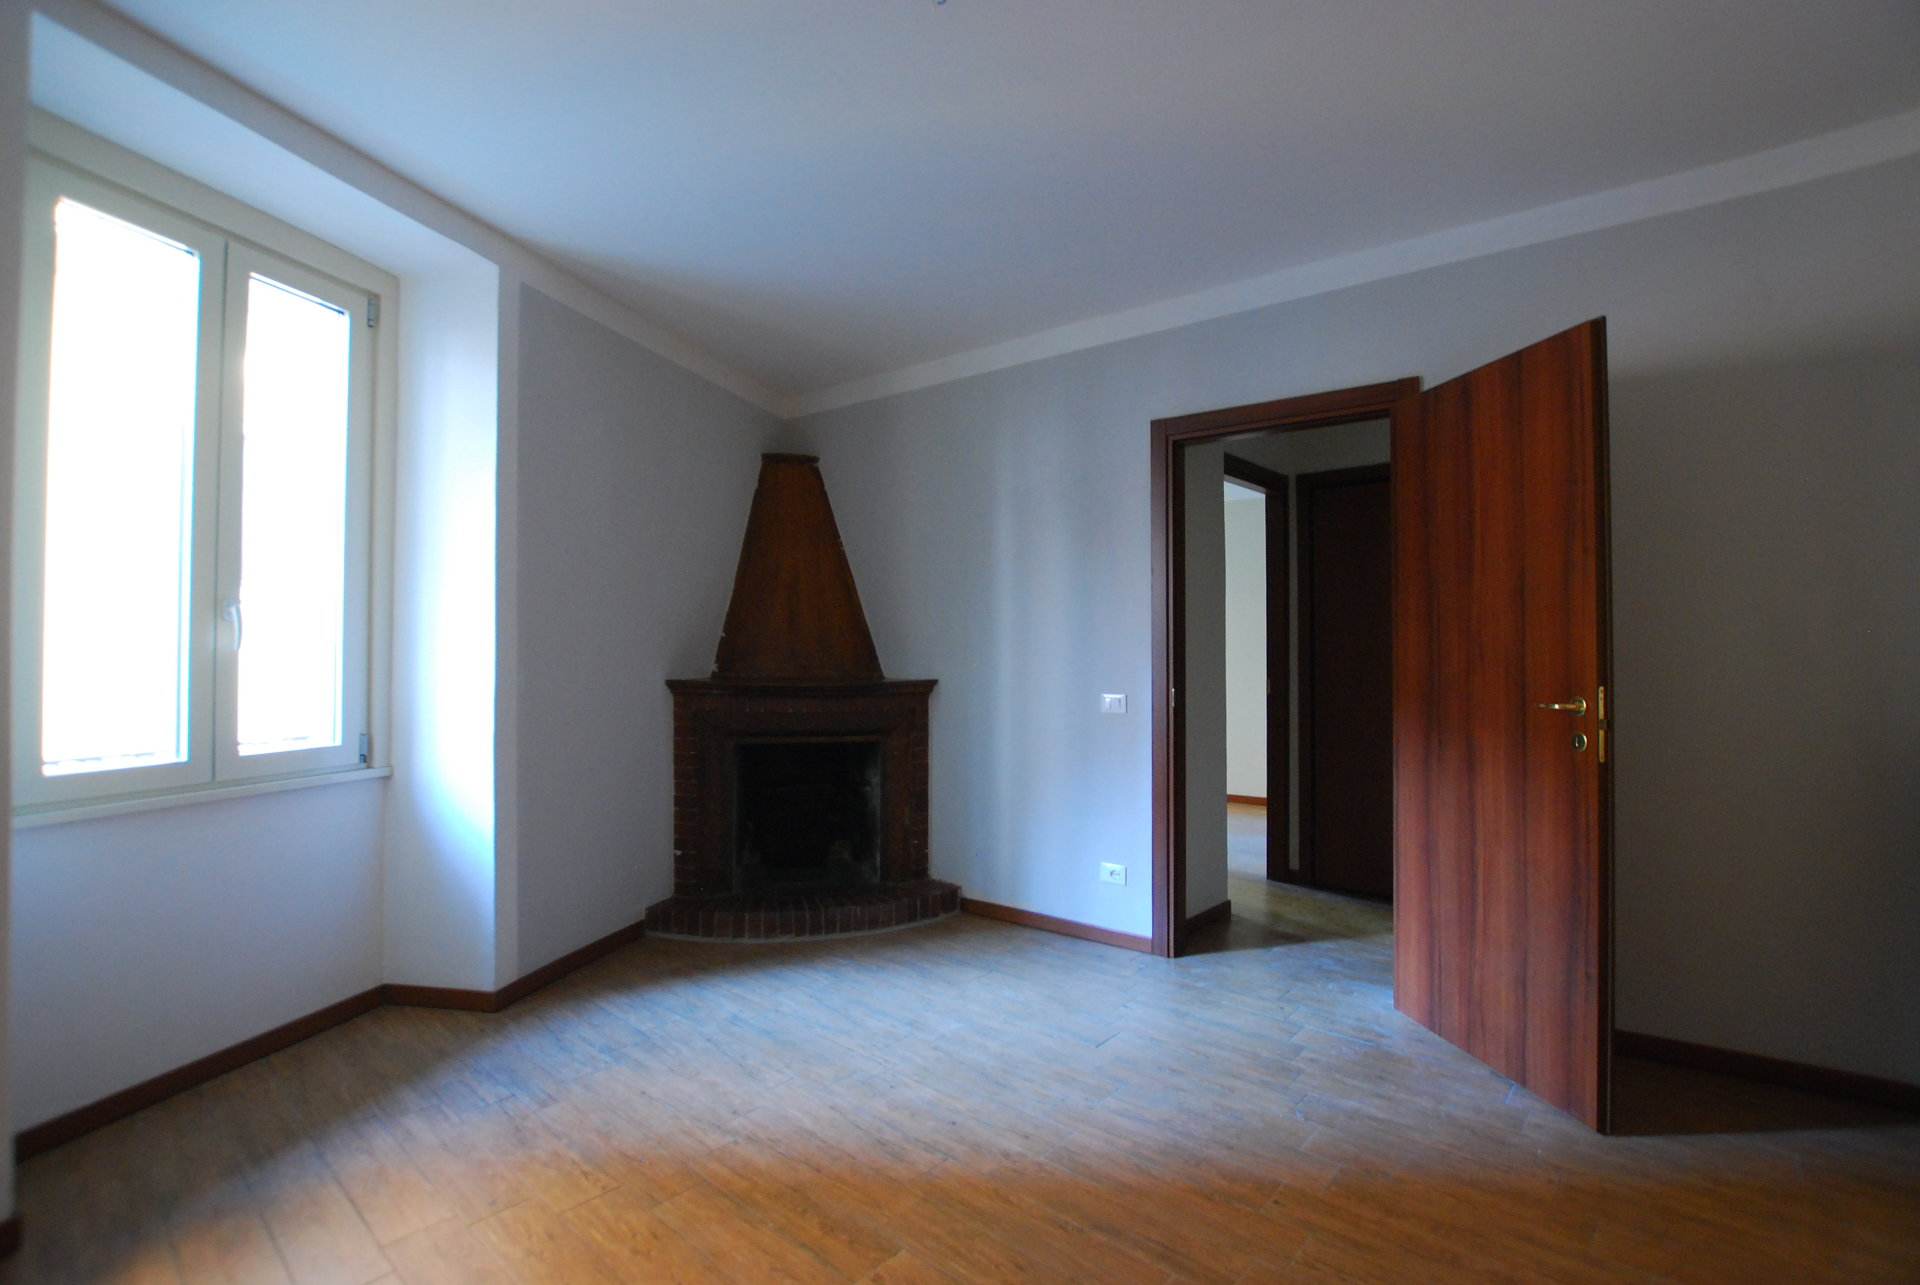 Rent apartment in the centre of Stresa- bedroom with fire place